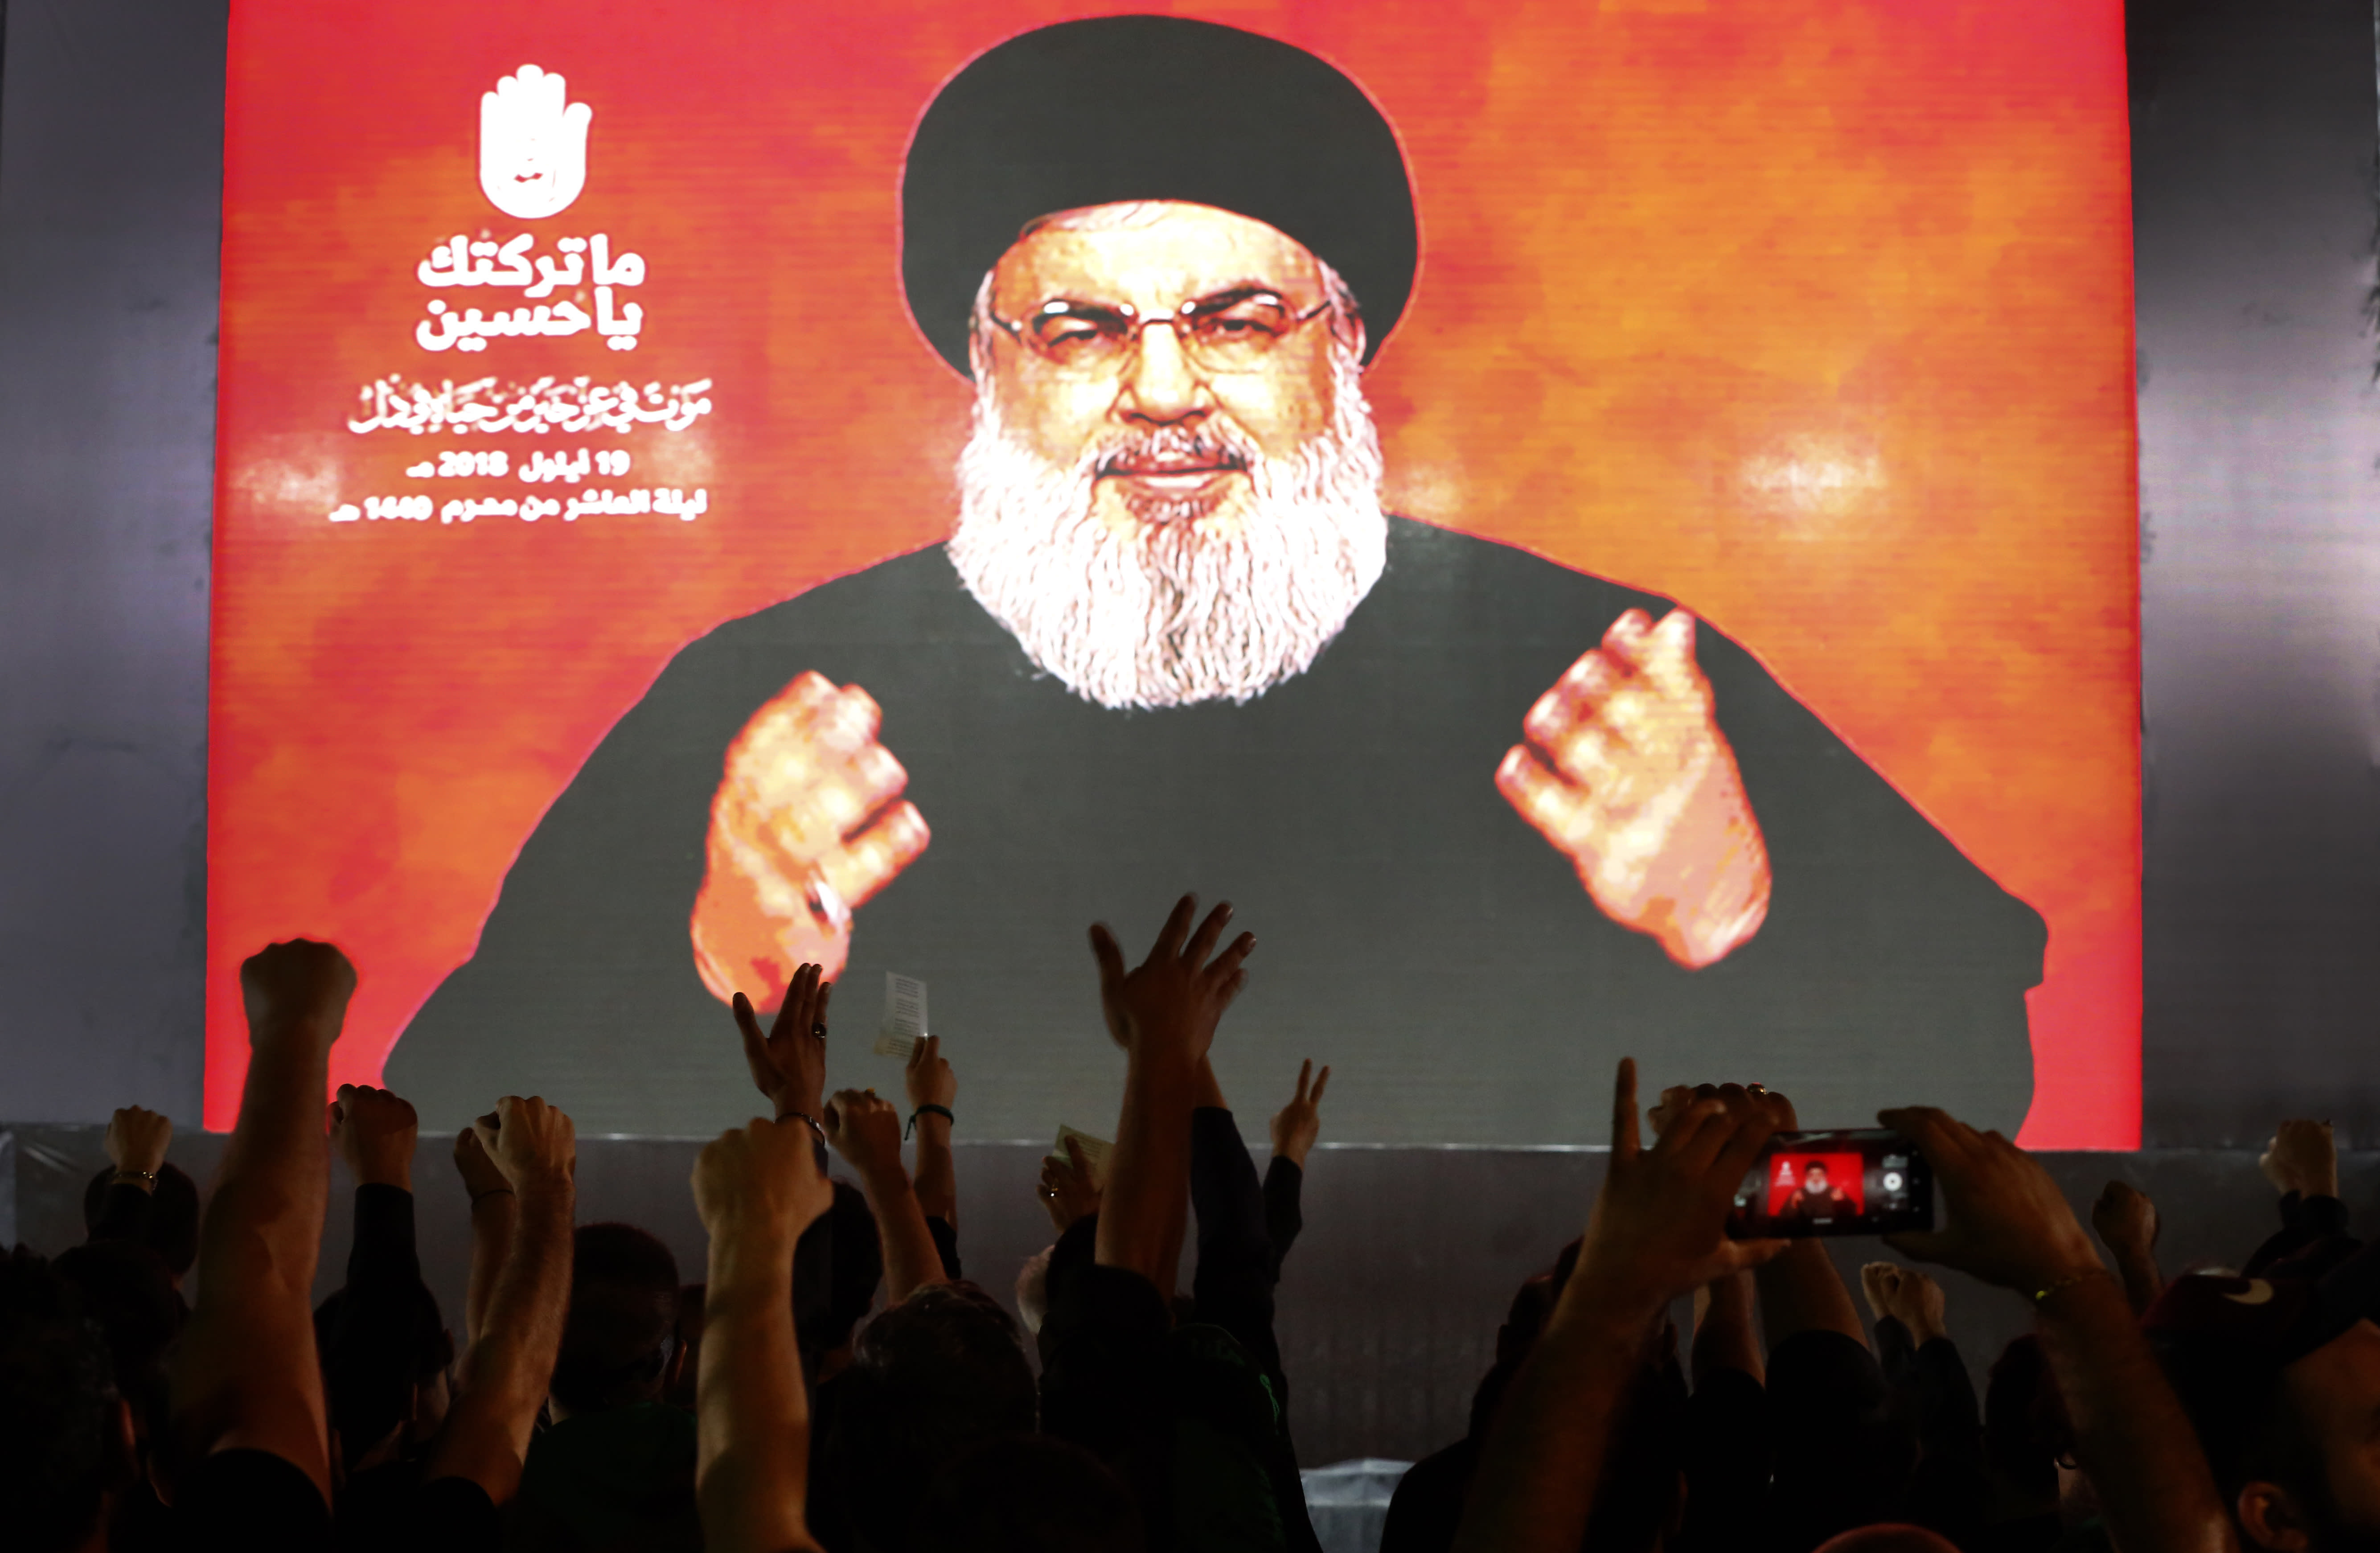 Hezbollah leader Sheik Hassan Nasrallah speaks via a video link, as his supporters raise their hands, during activities to mark the ninth of Ashura, a 10-day ritual commemorating the death of Imam Hussein, in a southern suburb of Beirut, Lebanon, Wednesday, Sept. 19, 2018. Hassan Nasrallah says his group may reduce the number of its fighters in Syria because of an easing of the conflict, particularly after a recent Russian-Turkey agreement that prevented an offensive on the last rebel stronghold. (AP Photo/Hussein Malla)